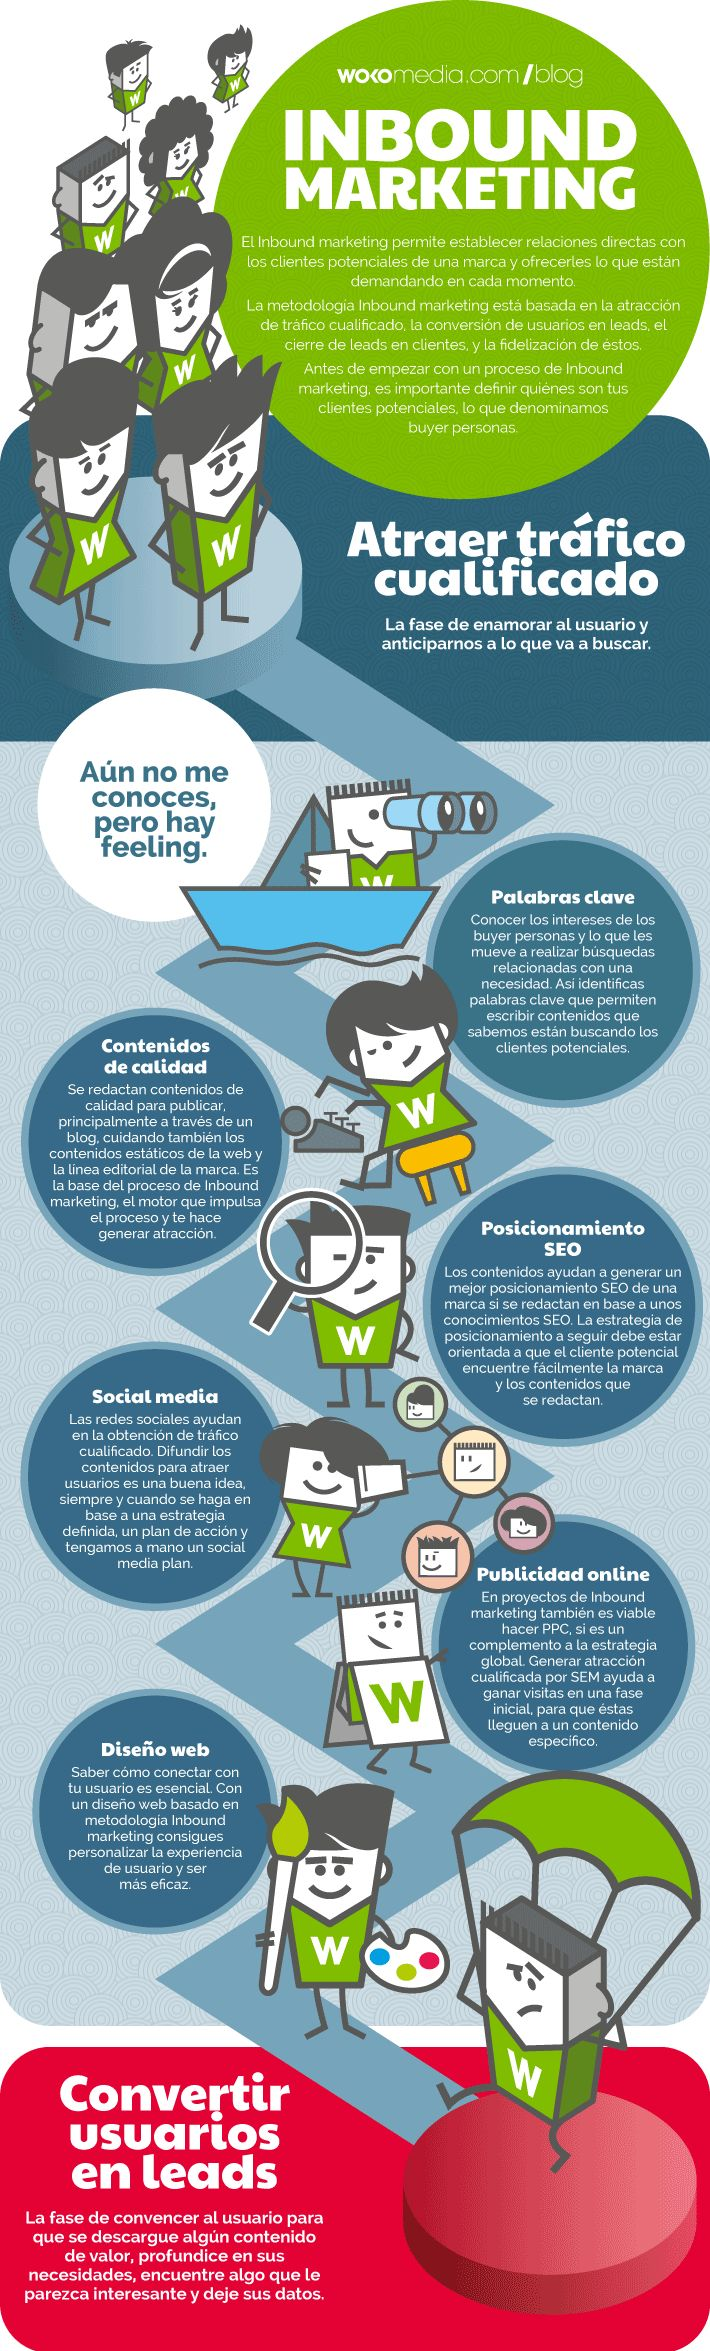 Qué es Inbound Marketing #Infografía